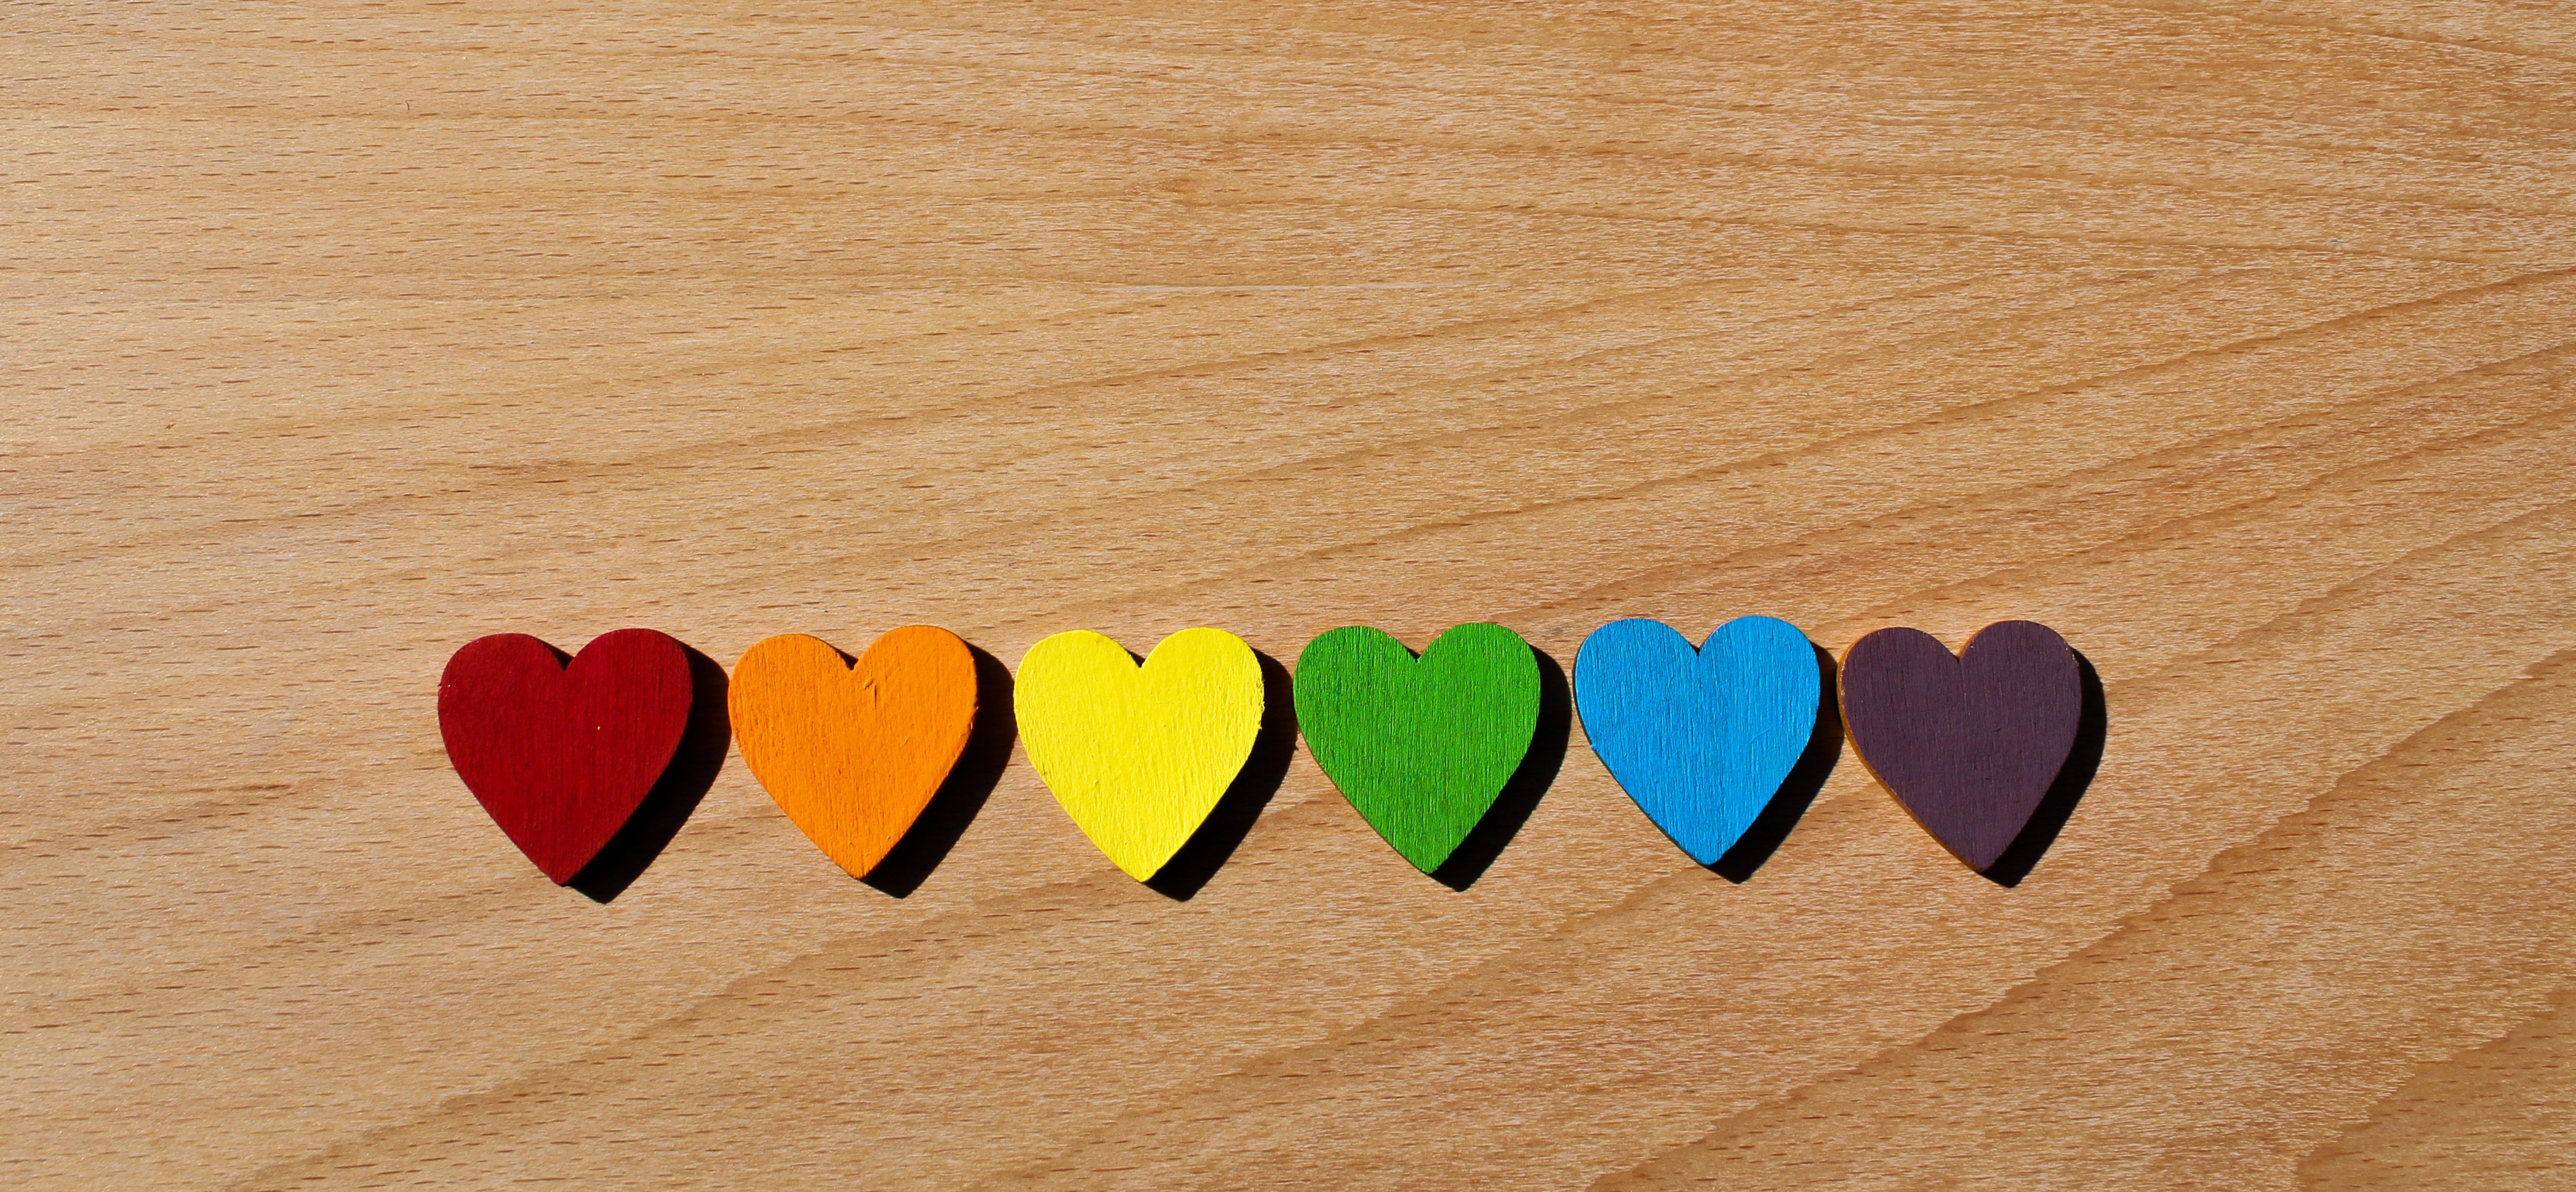 rainbow-wooden-hearts-lined-up-on-oak-table-1